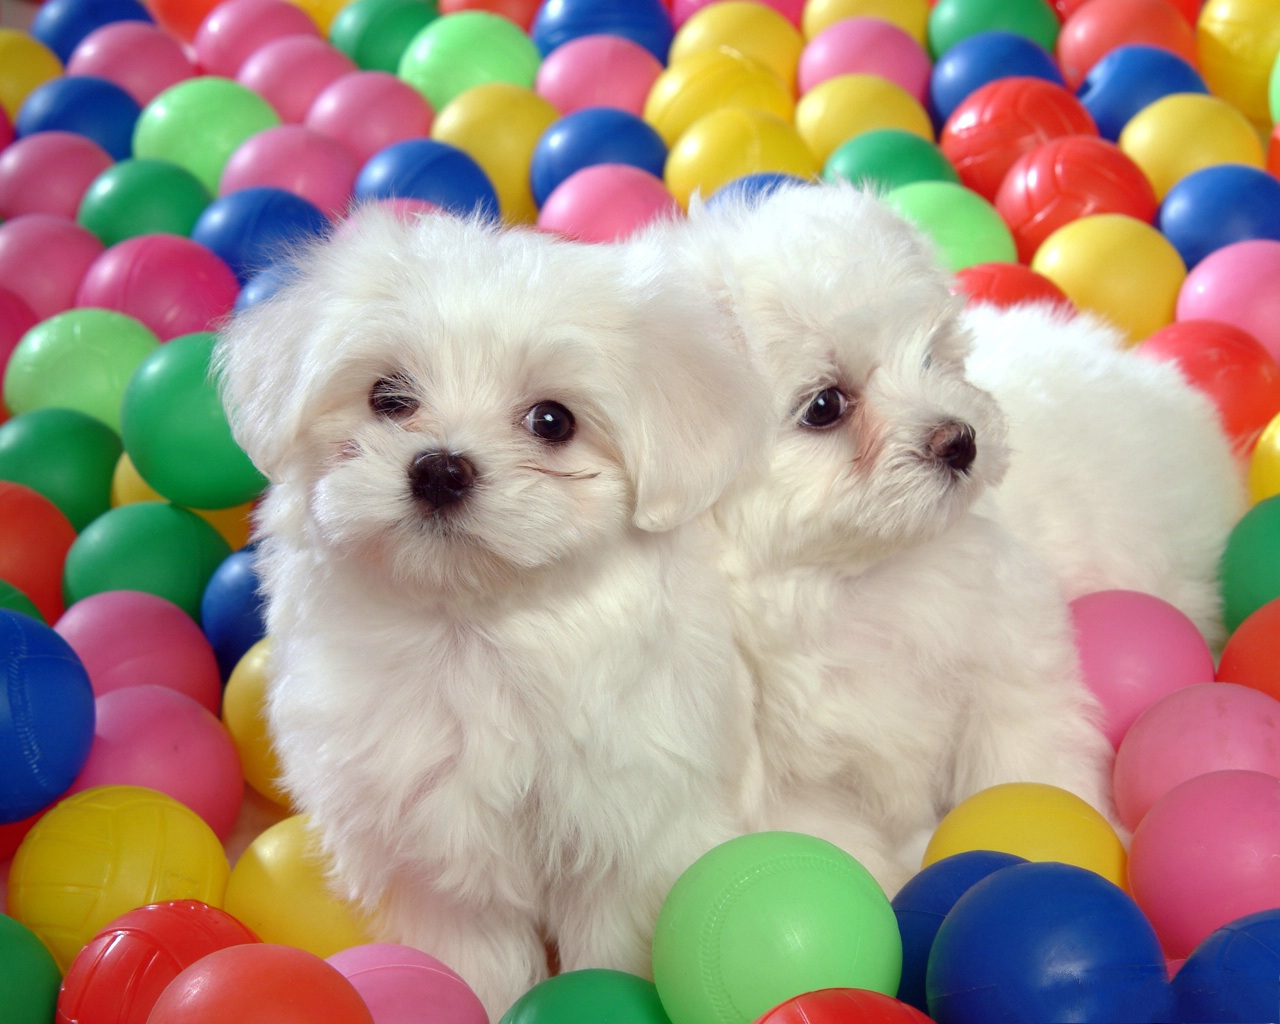 click to free download the wallpaper--Baby Dogs Picture, Two Close White Puppies, Colorful Balls Around Them 1280X1024 free wallpaper download